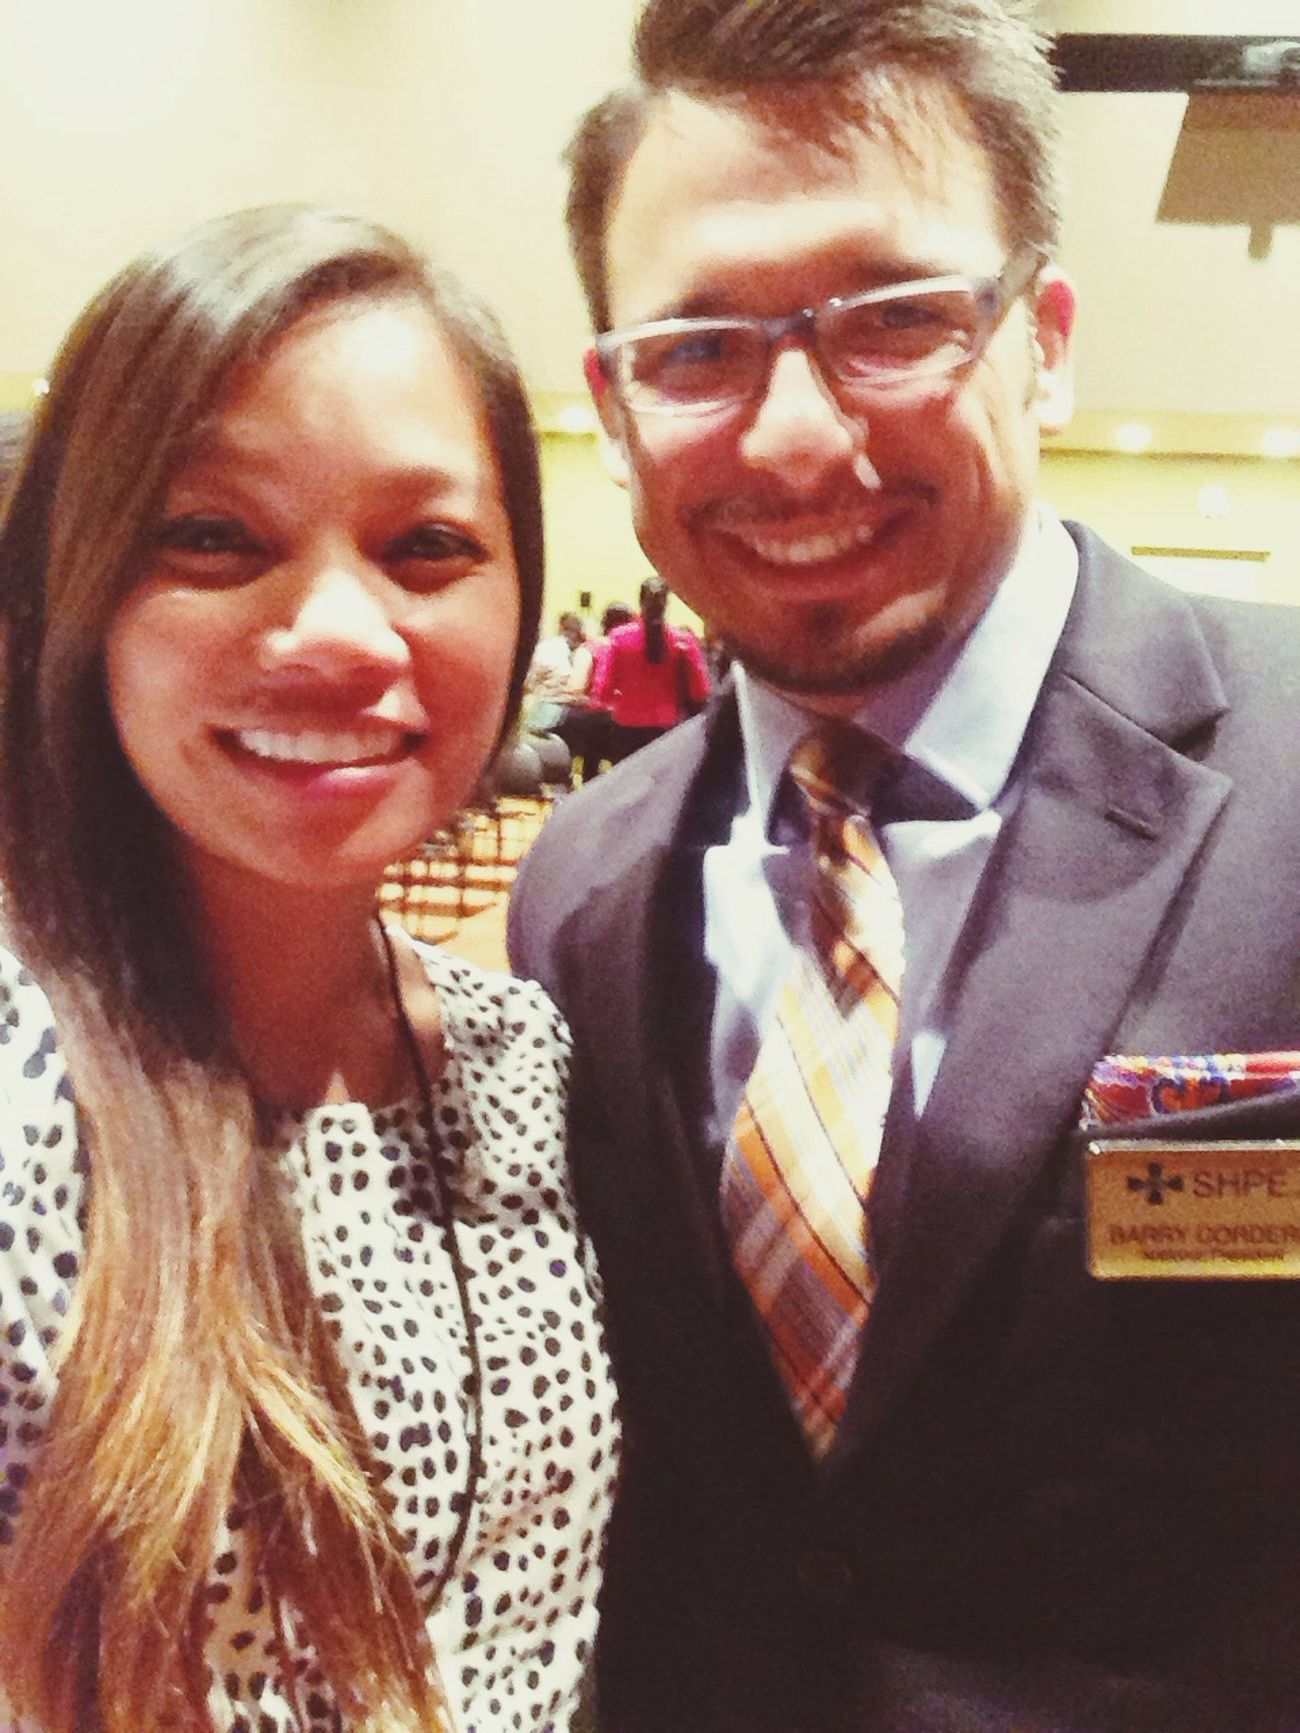 Selfie with my mentor/SHPE National President! Mentor SHPE Blessed  Happy